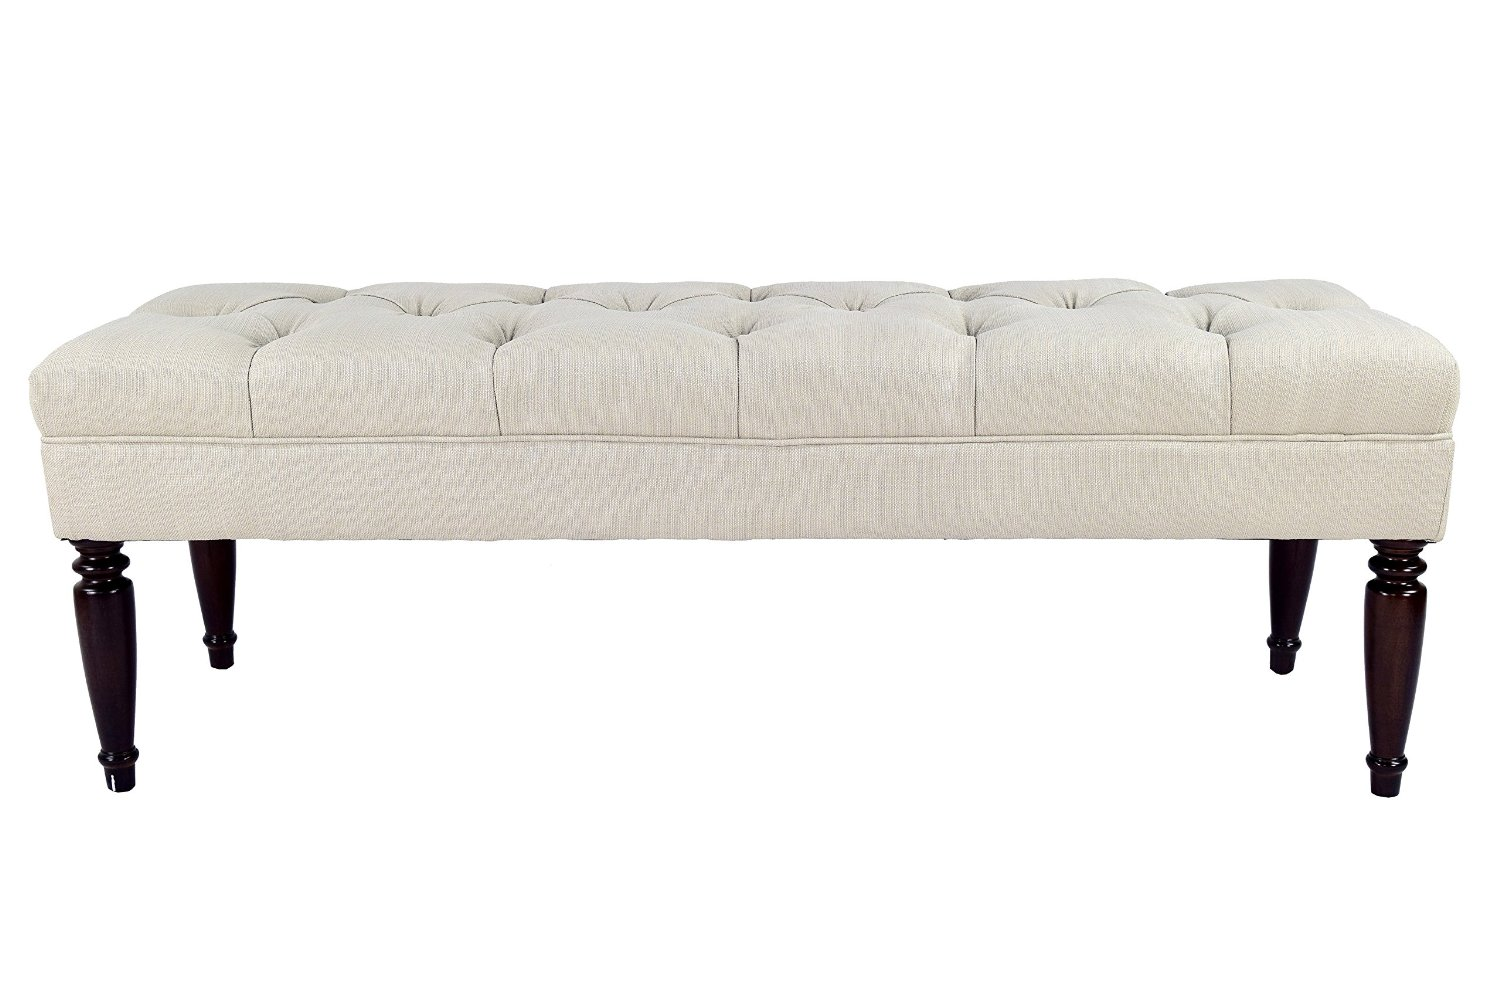 MJL Furniture Designs Claudia Collection Upholstered Diamond Tufted Bedroom Accent Bench, Sachi Series, Khaki